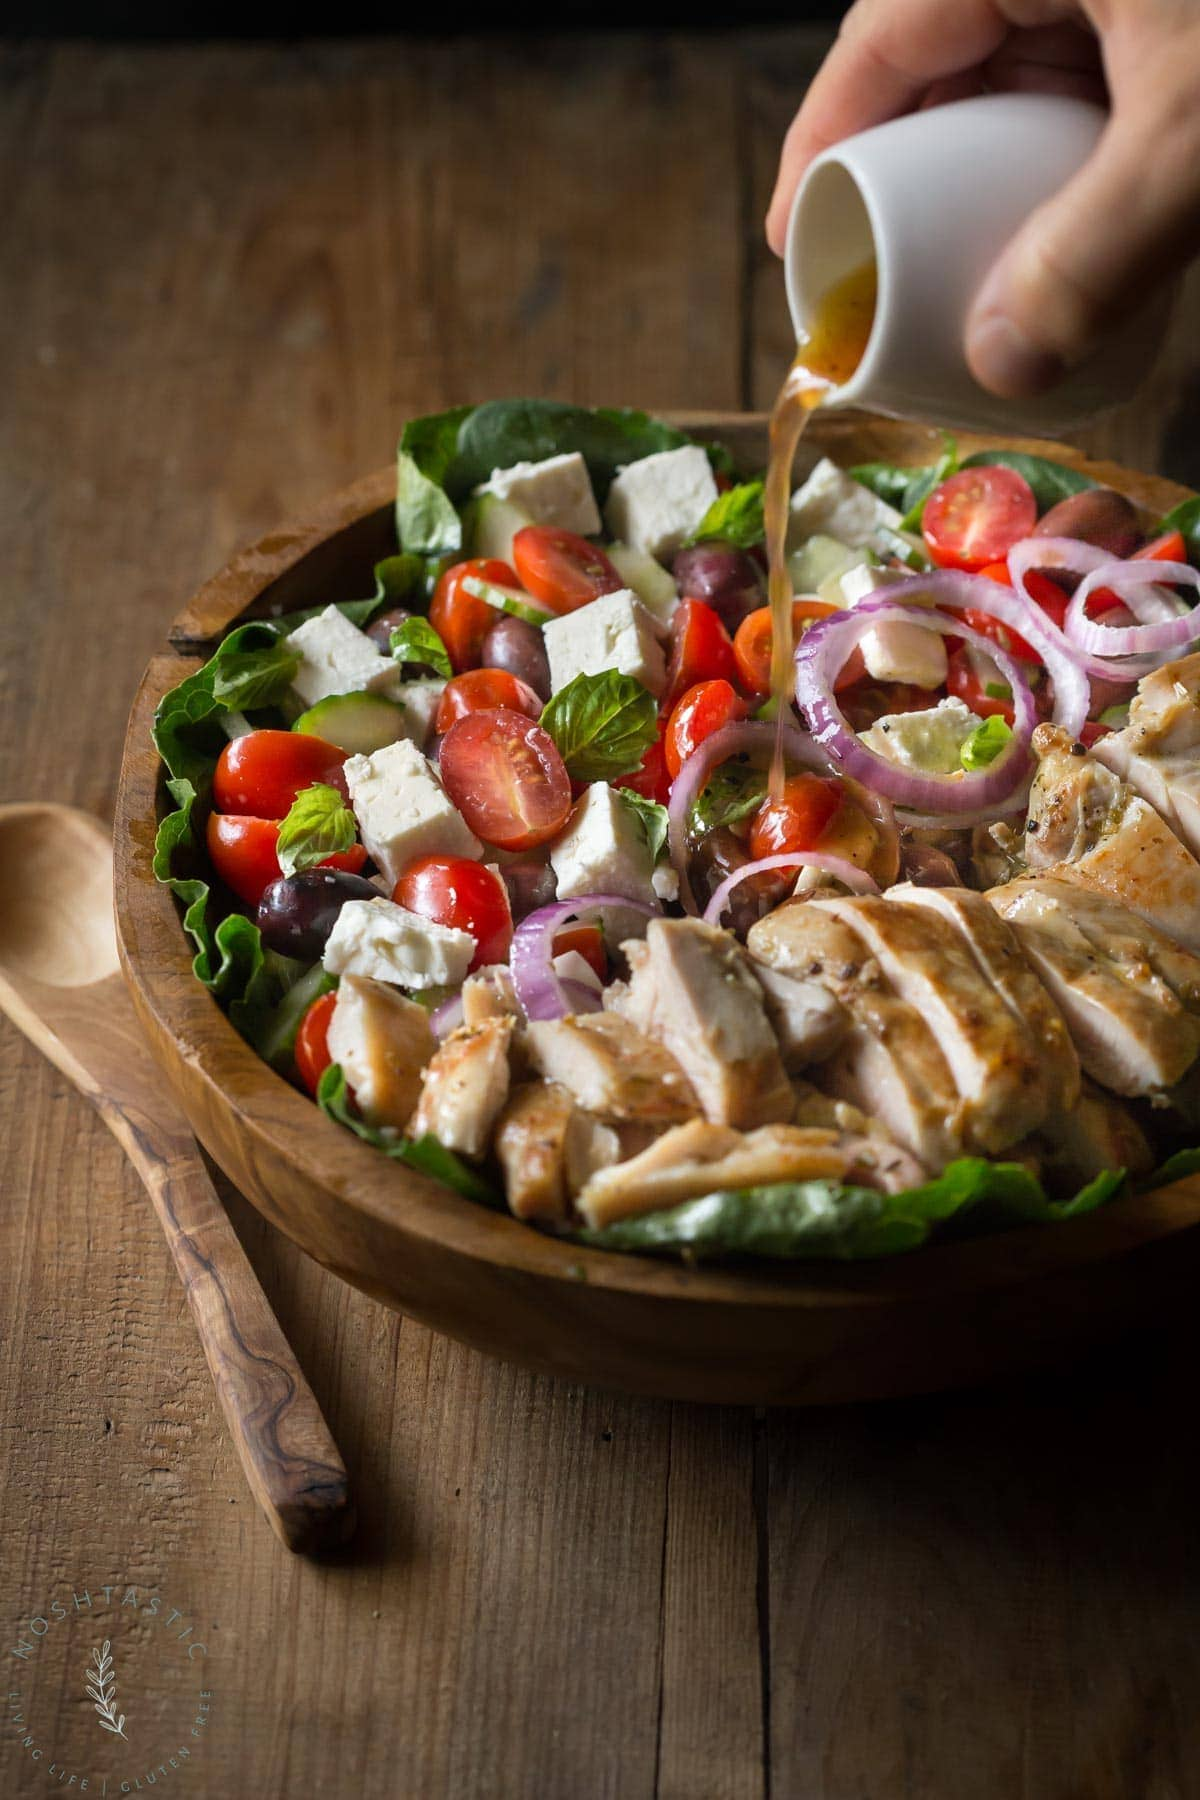 Greek Chicken Salad Recipe with a poured over vinaigrette